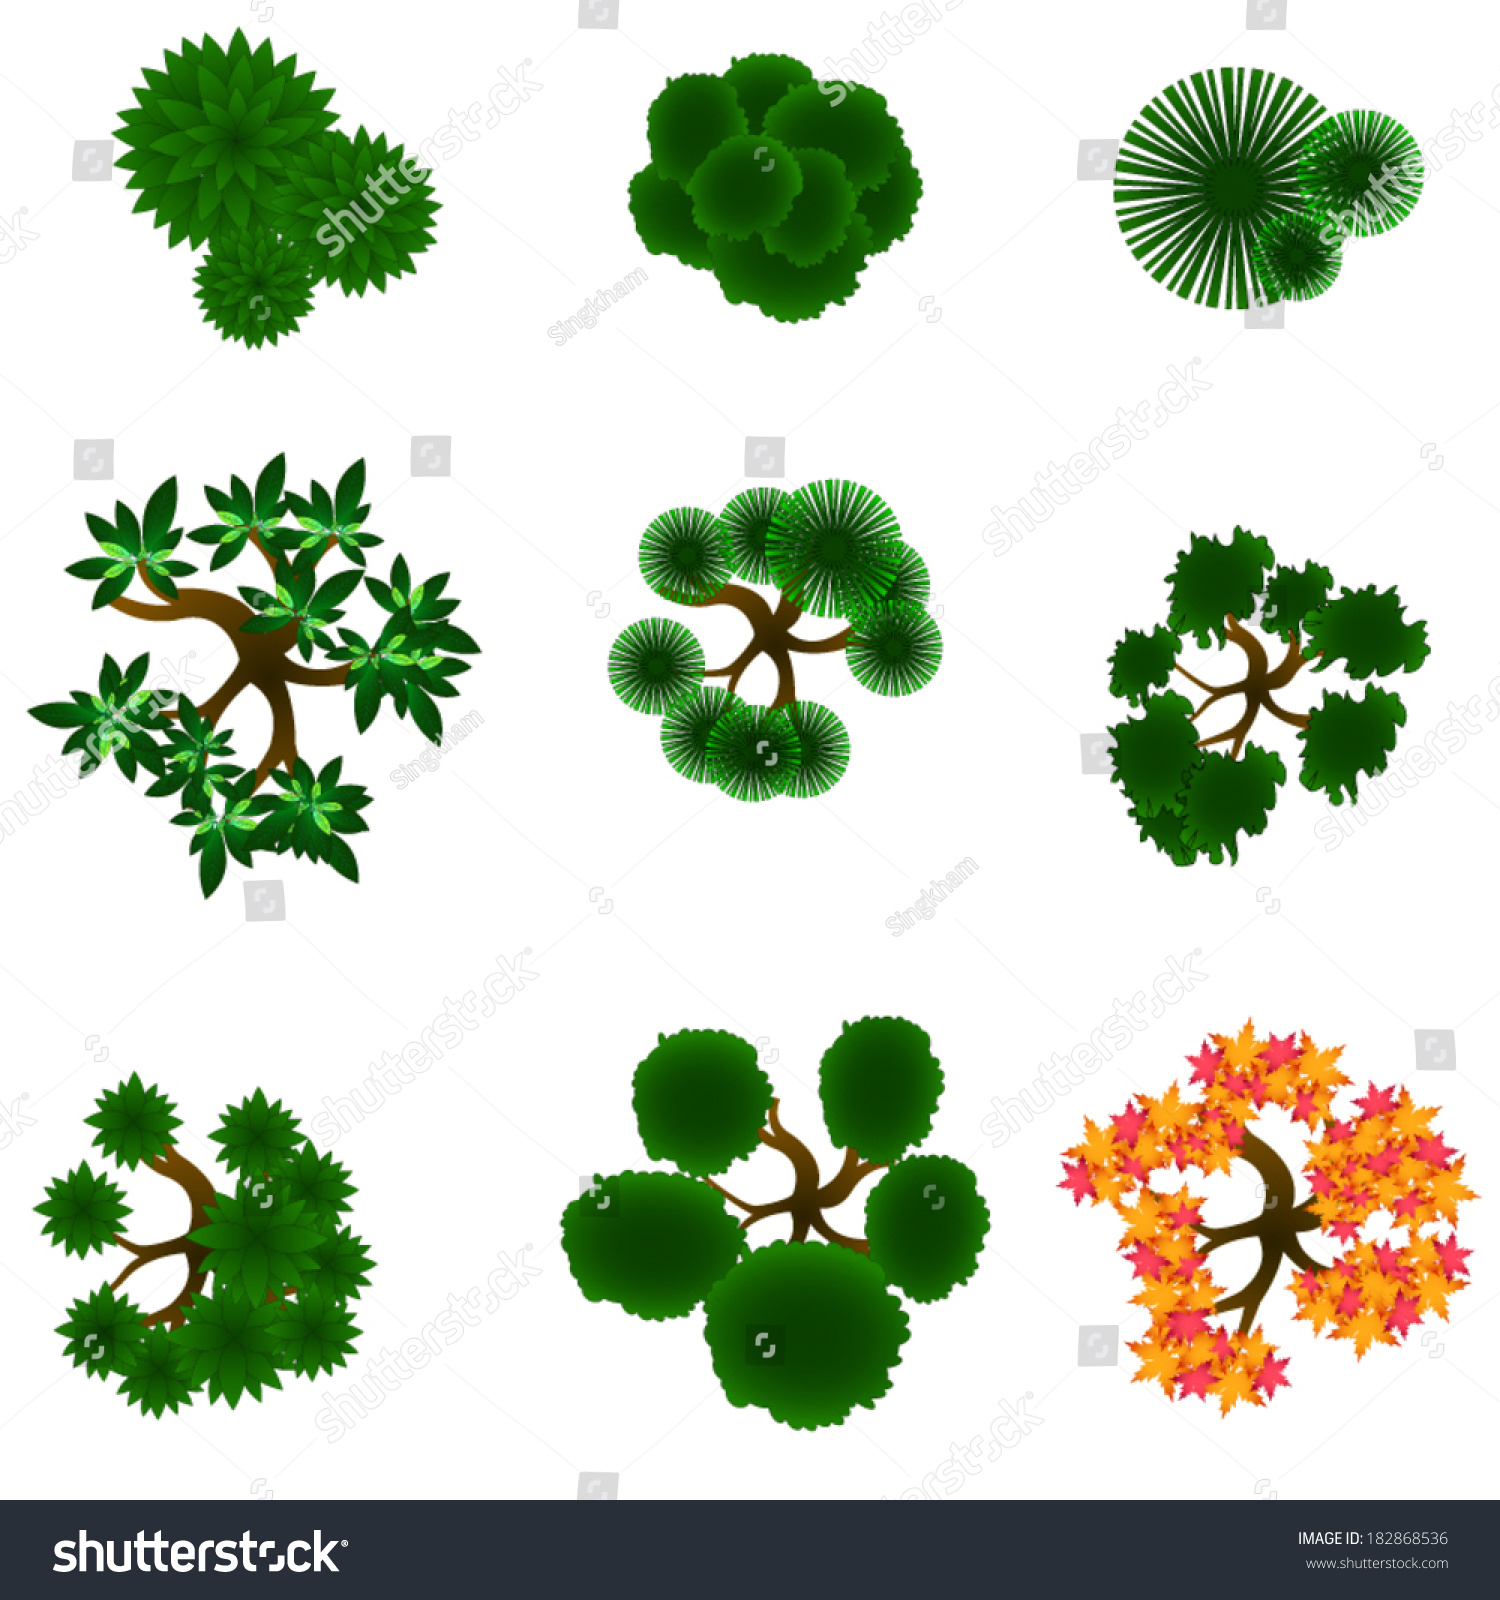 Royalty-free Trees item top view for landscape… #182868536 Stock ... for Plant Top View Vector  83fiz